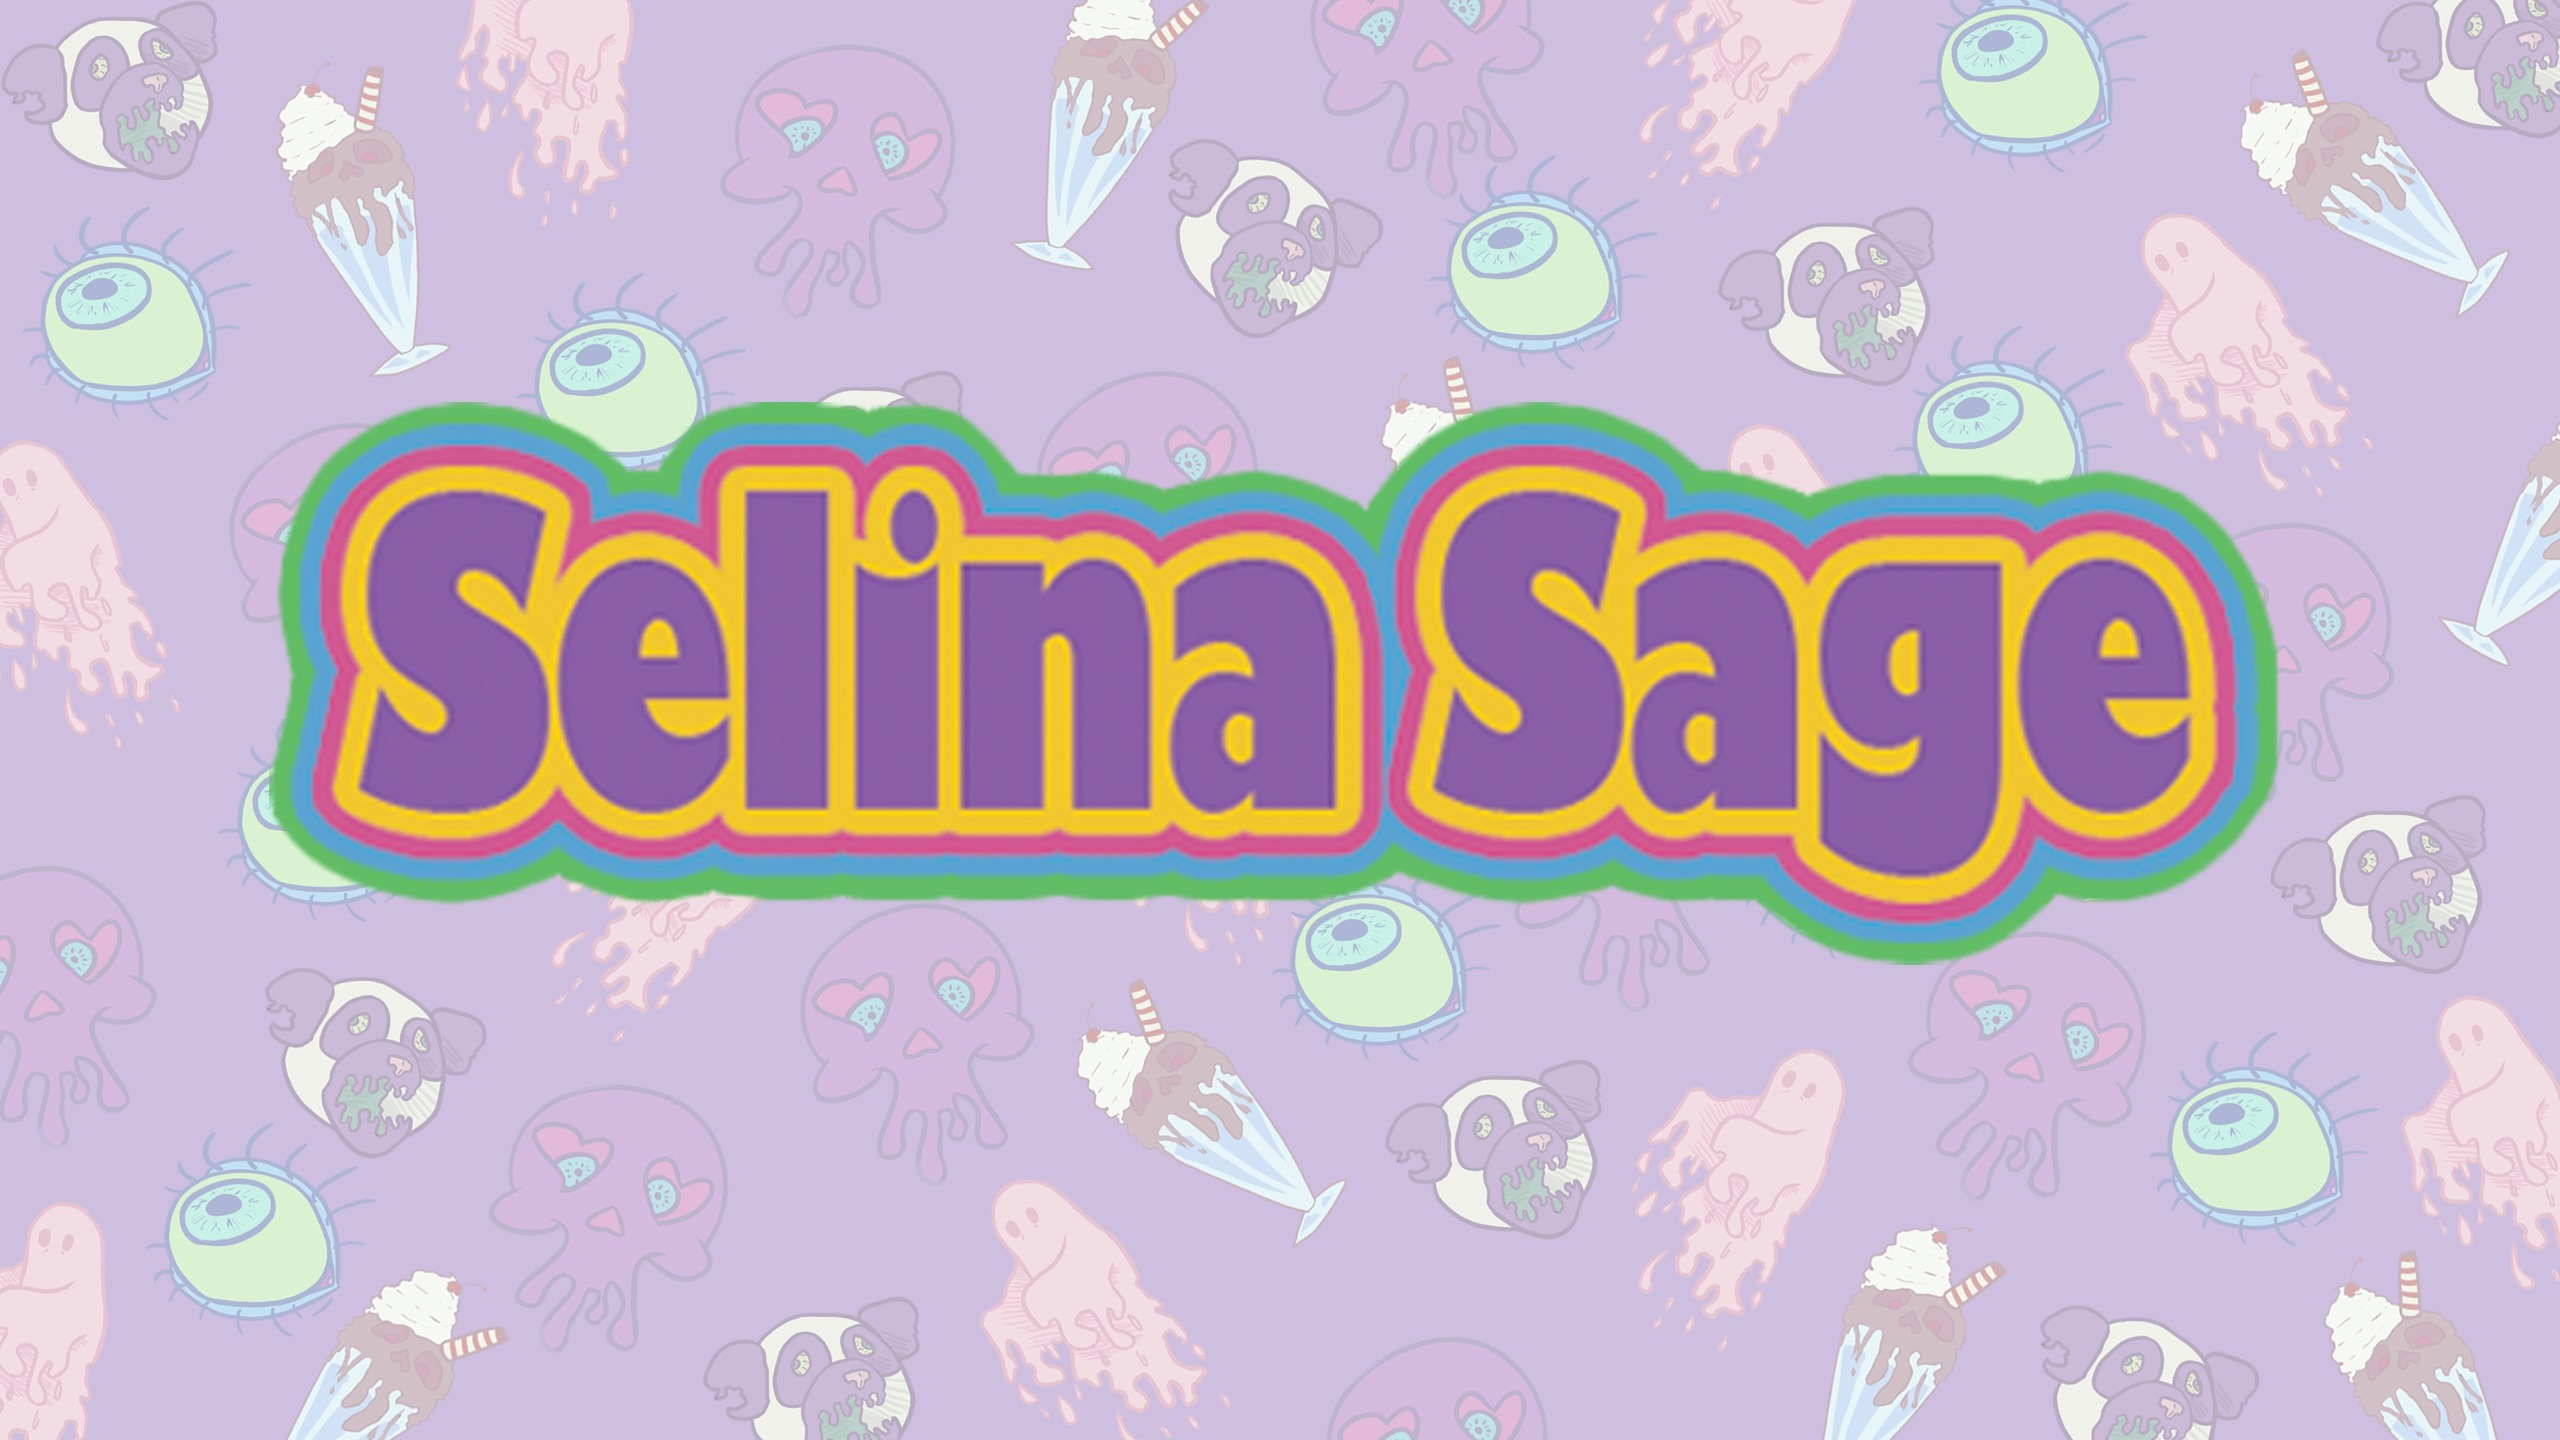 (@selinasage) Cover Image